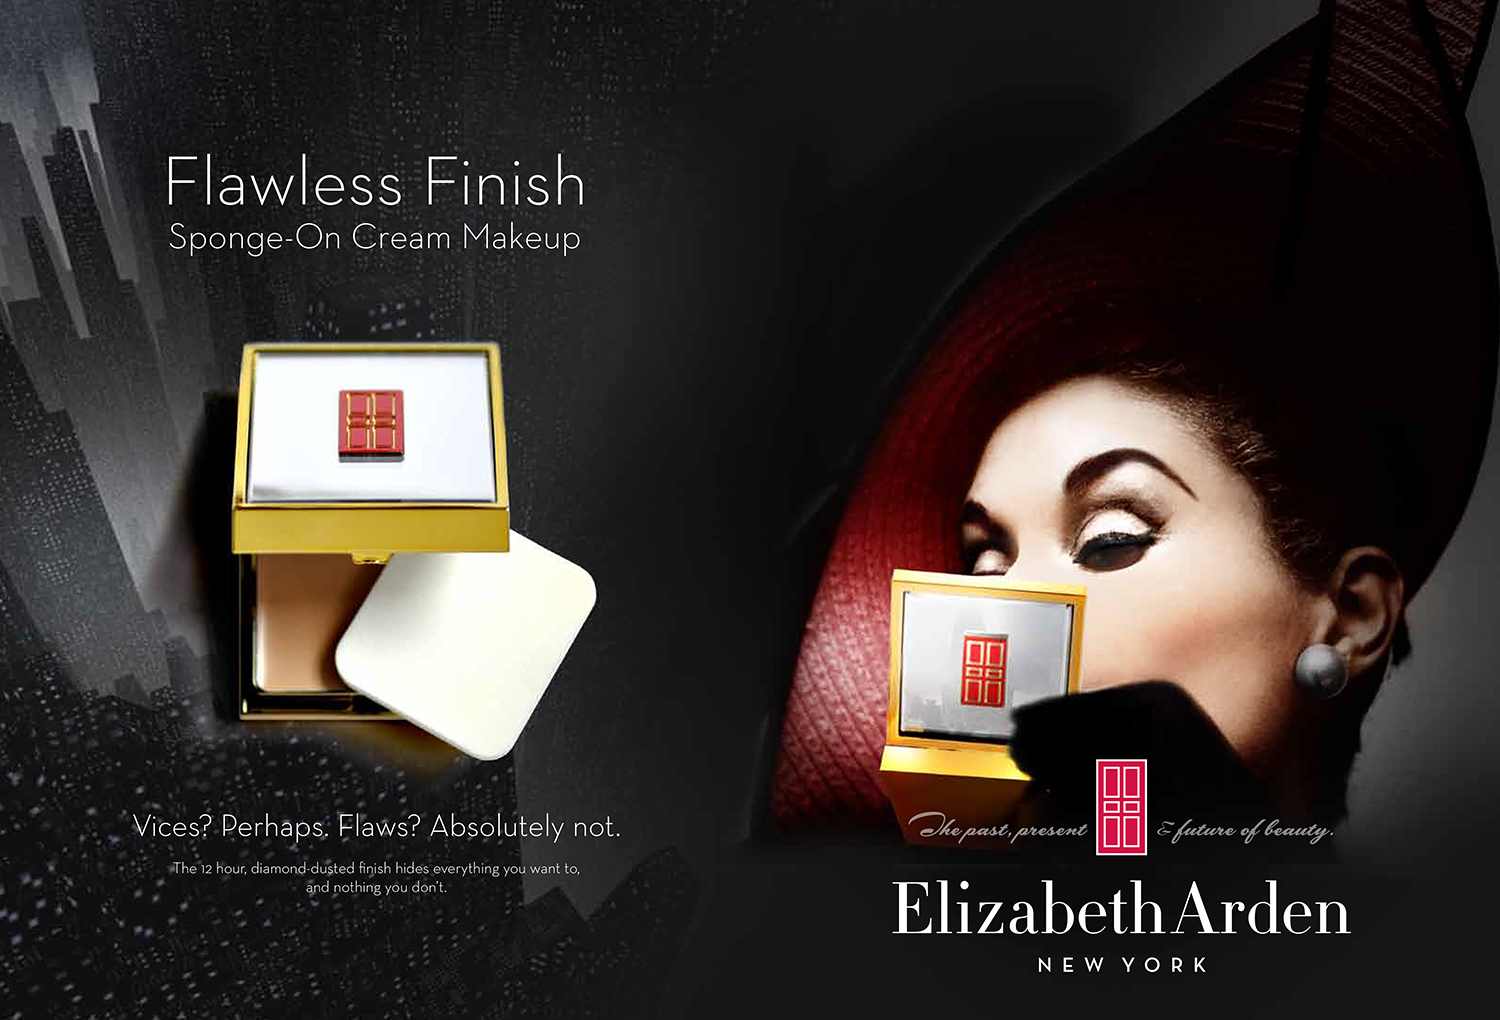 Elizabeth Arden (Vices)